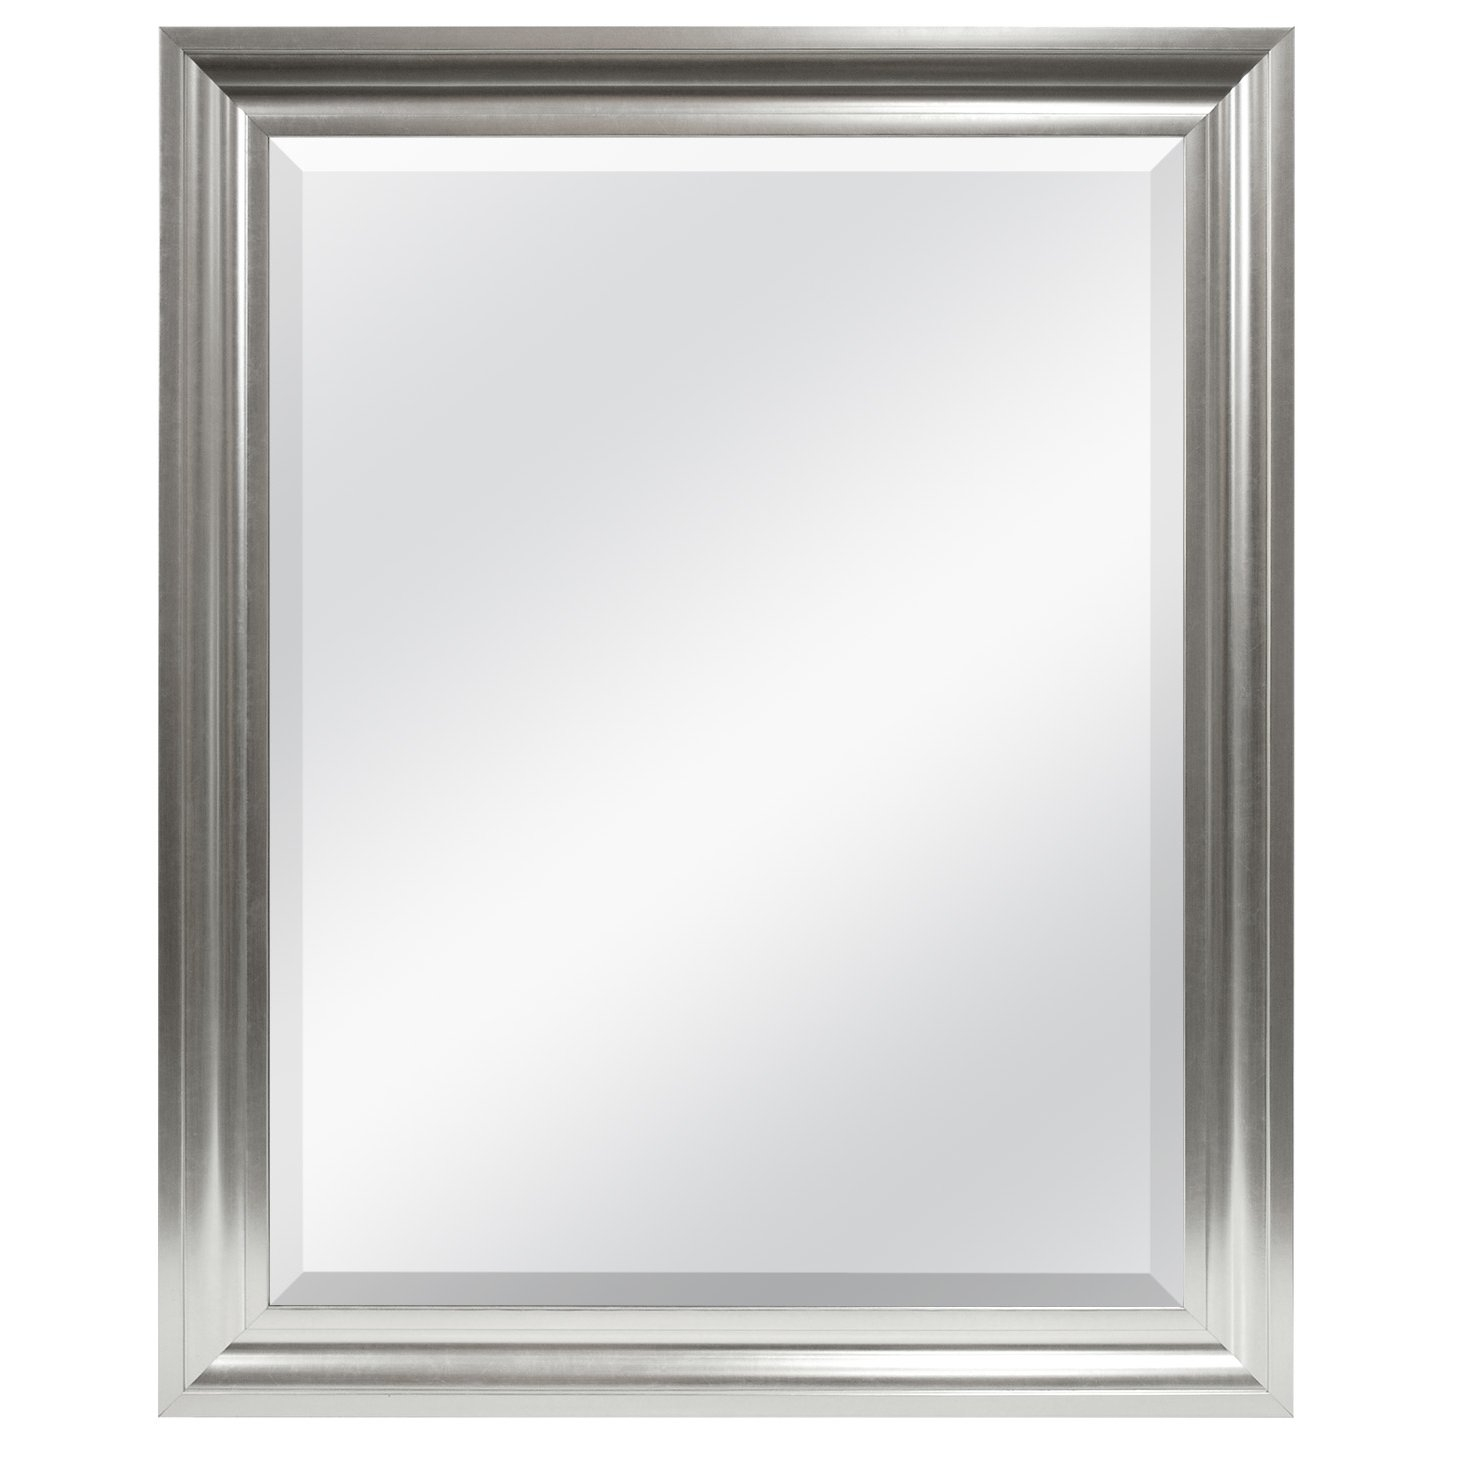 Dar Home Co Rectangle Plastic Beveled Wall Mirror Reviews In Bevel Mirror (Image 7 of 15)